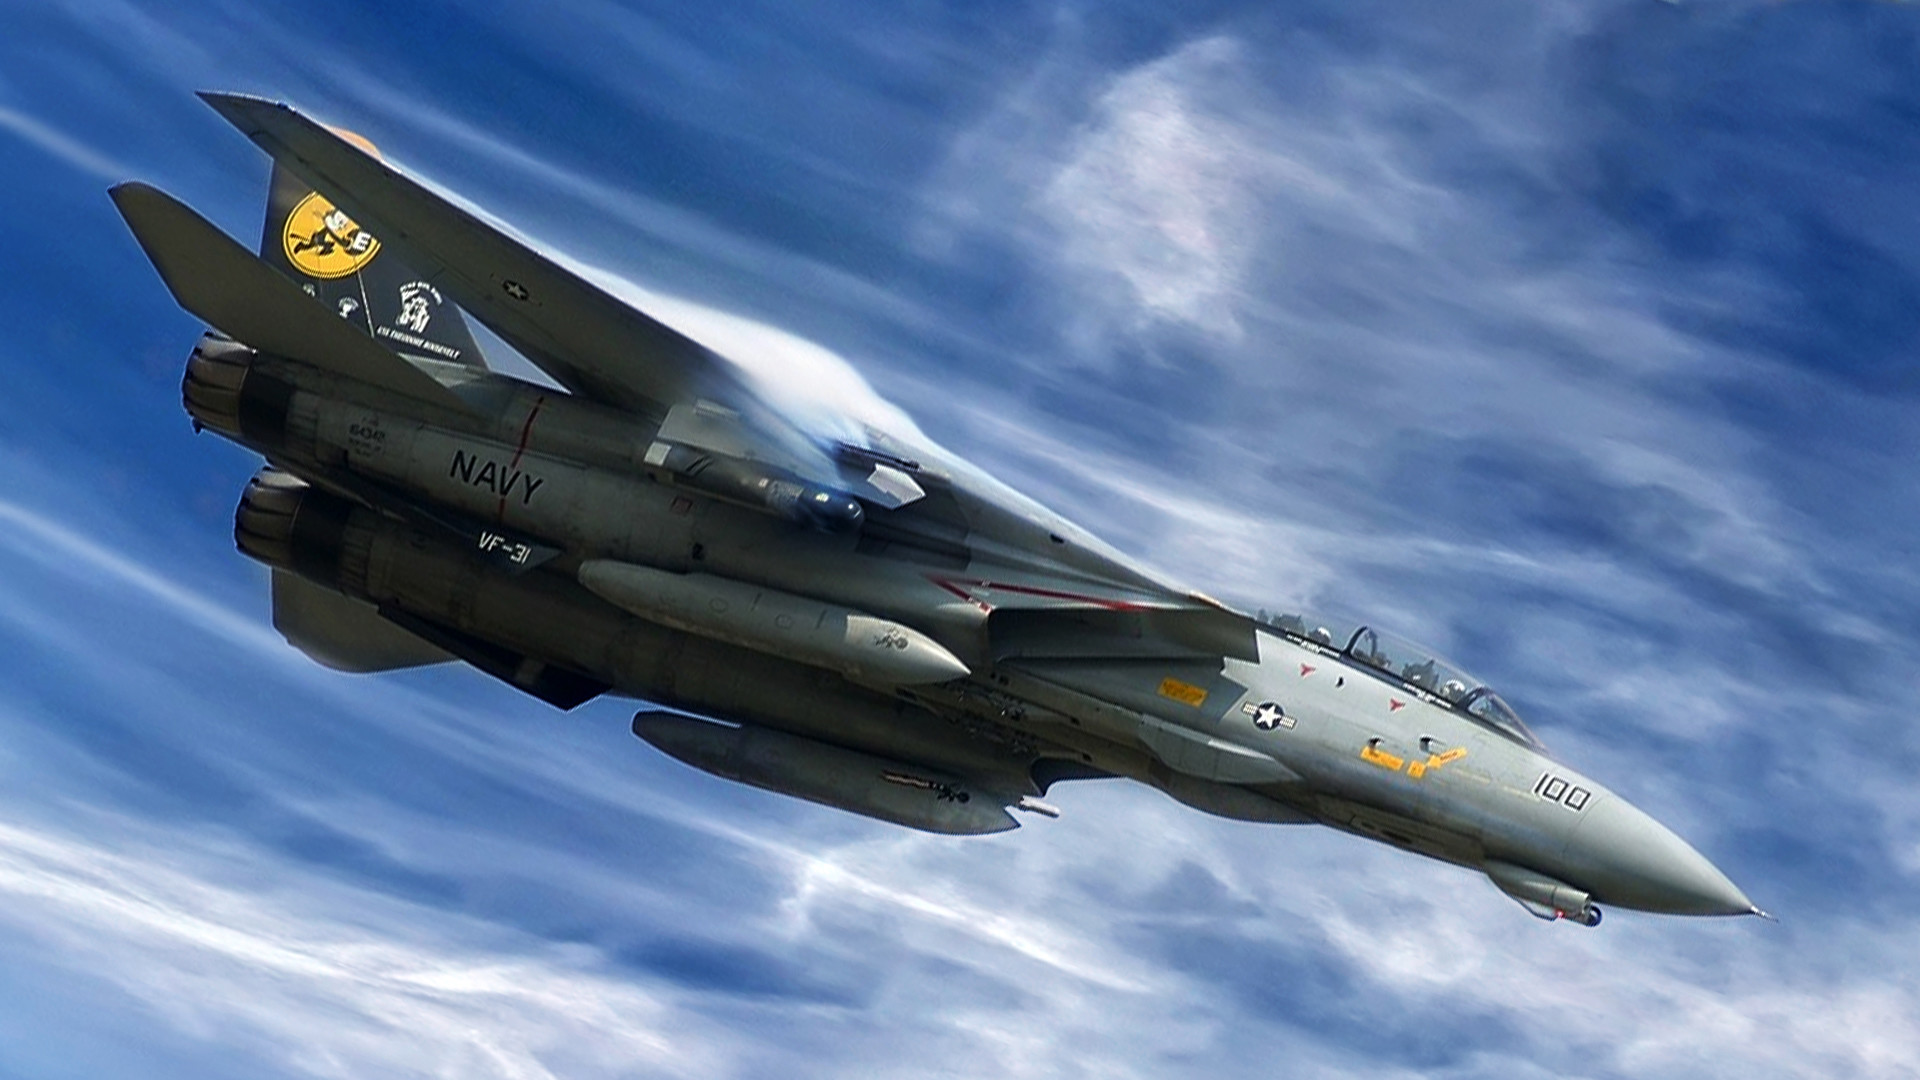 1920x1080 Grumman F-14 Tomcat HD Wallpaper | Hintergrund |  | ID:151861 -  Wallpaper Abyss